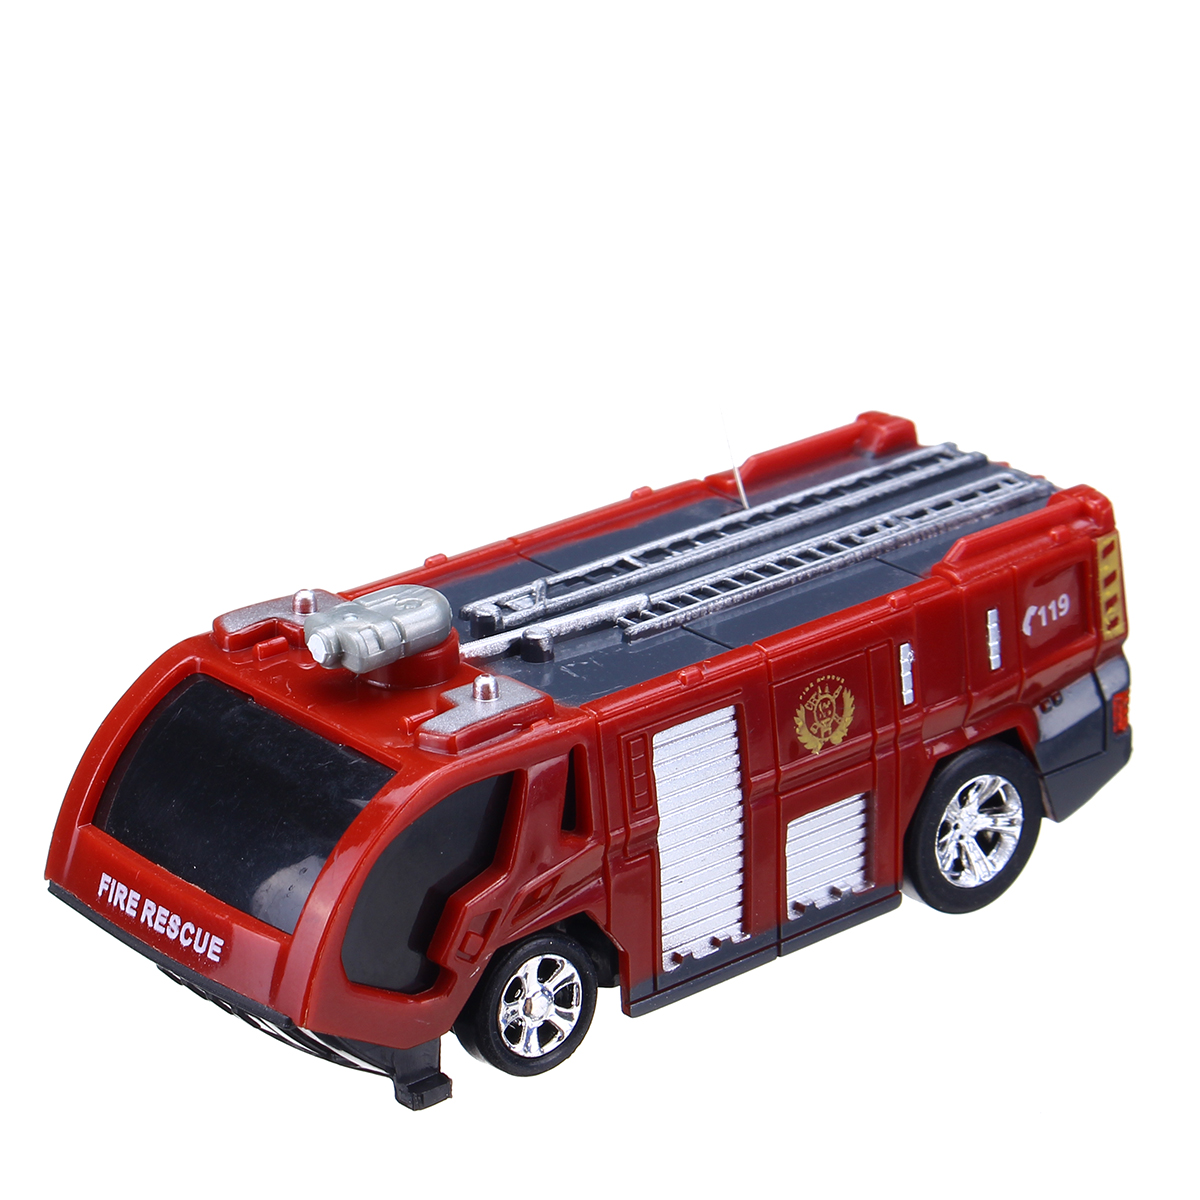 Toddlers Age 2,3,4,5, 6 in 1 Fire Engine Toy with Mini Fire Rescue Emergency Vehicles Fire Truck for Boys Best car carrier truck Play Set w// Station and Rescue Ladder |Toys Gifts for Boys /& Girls